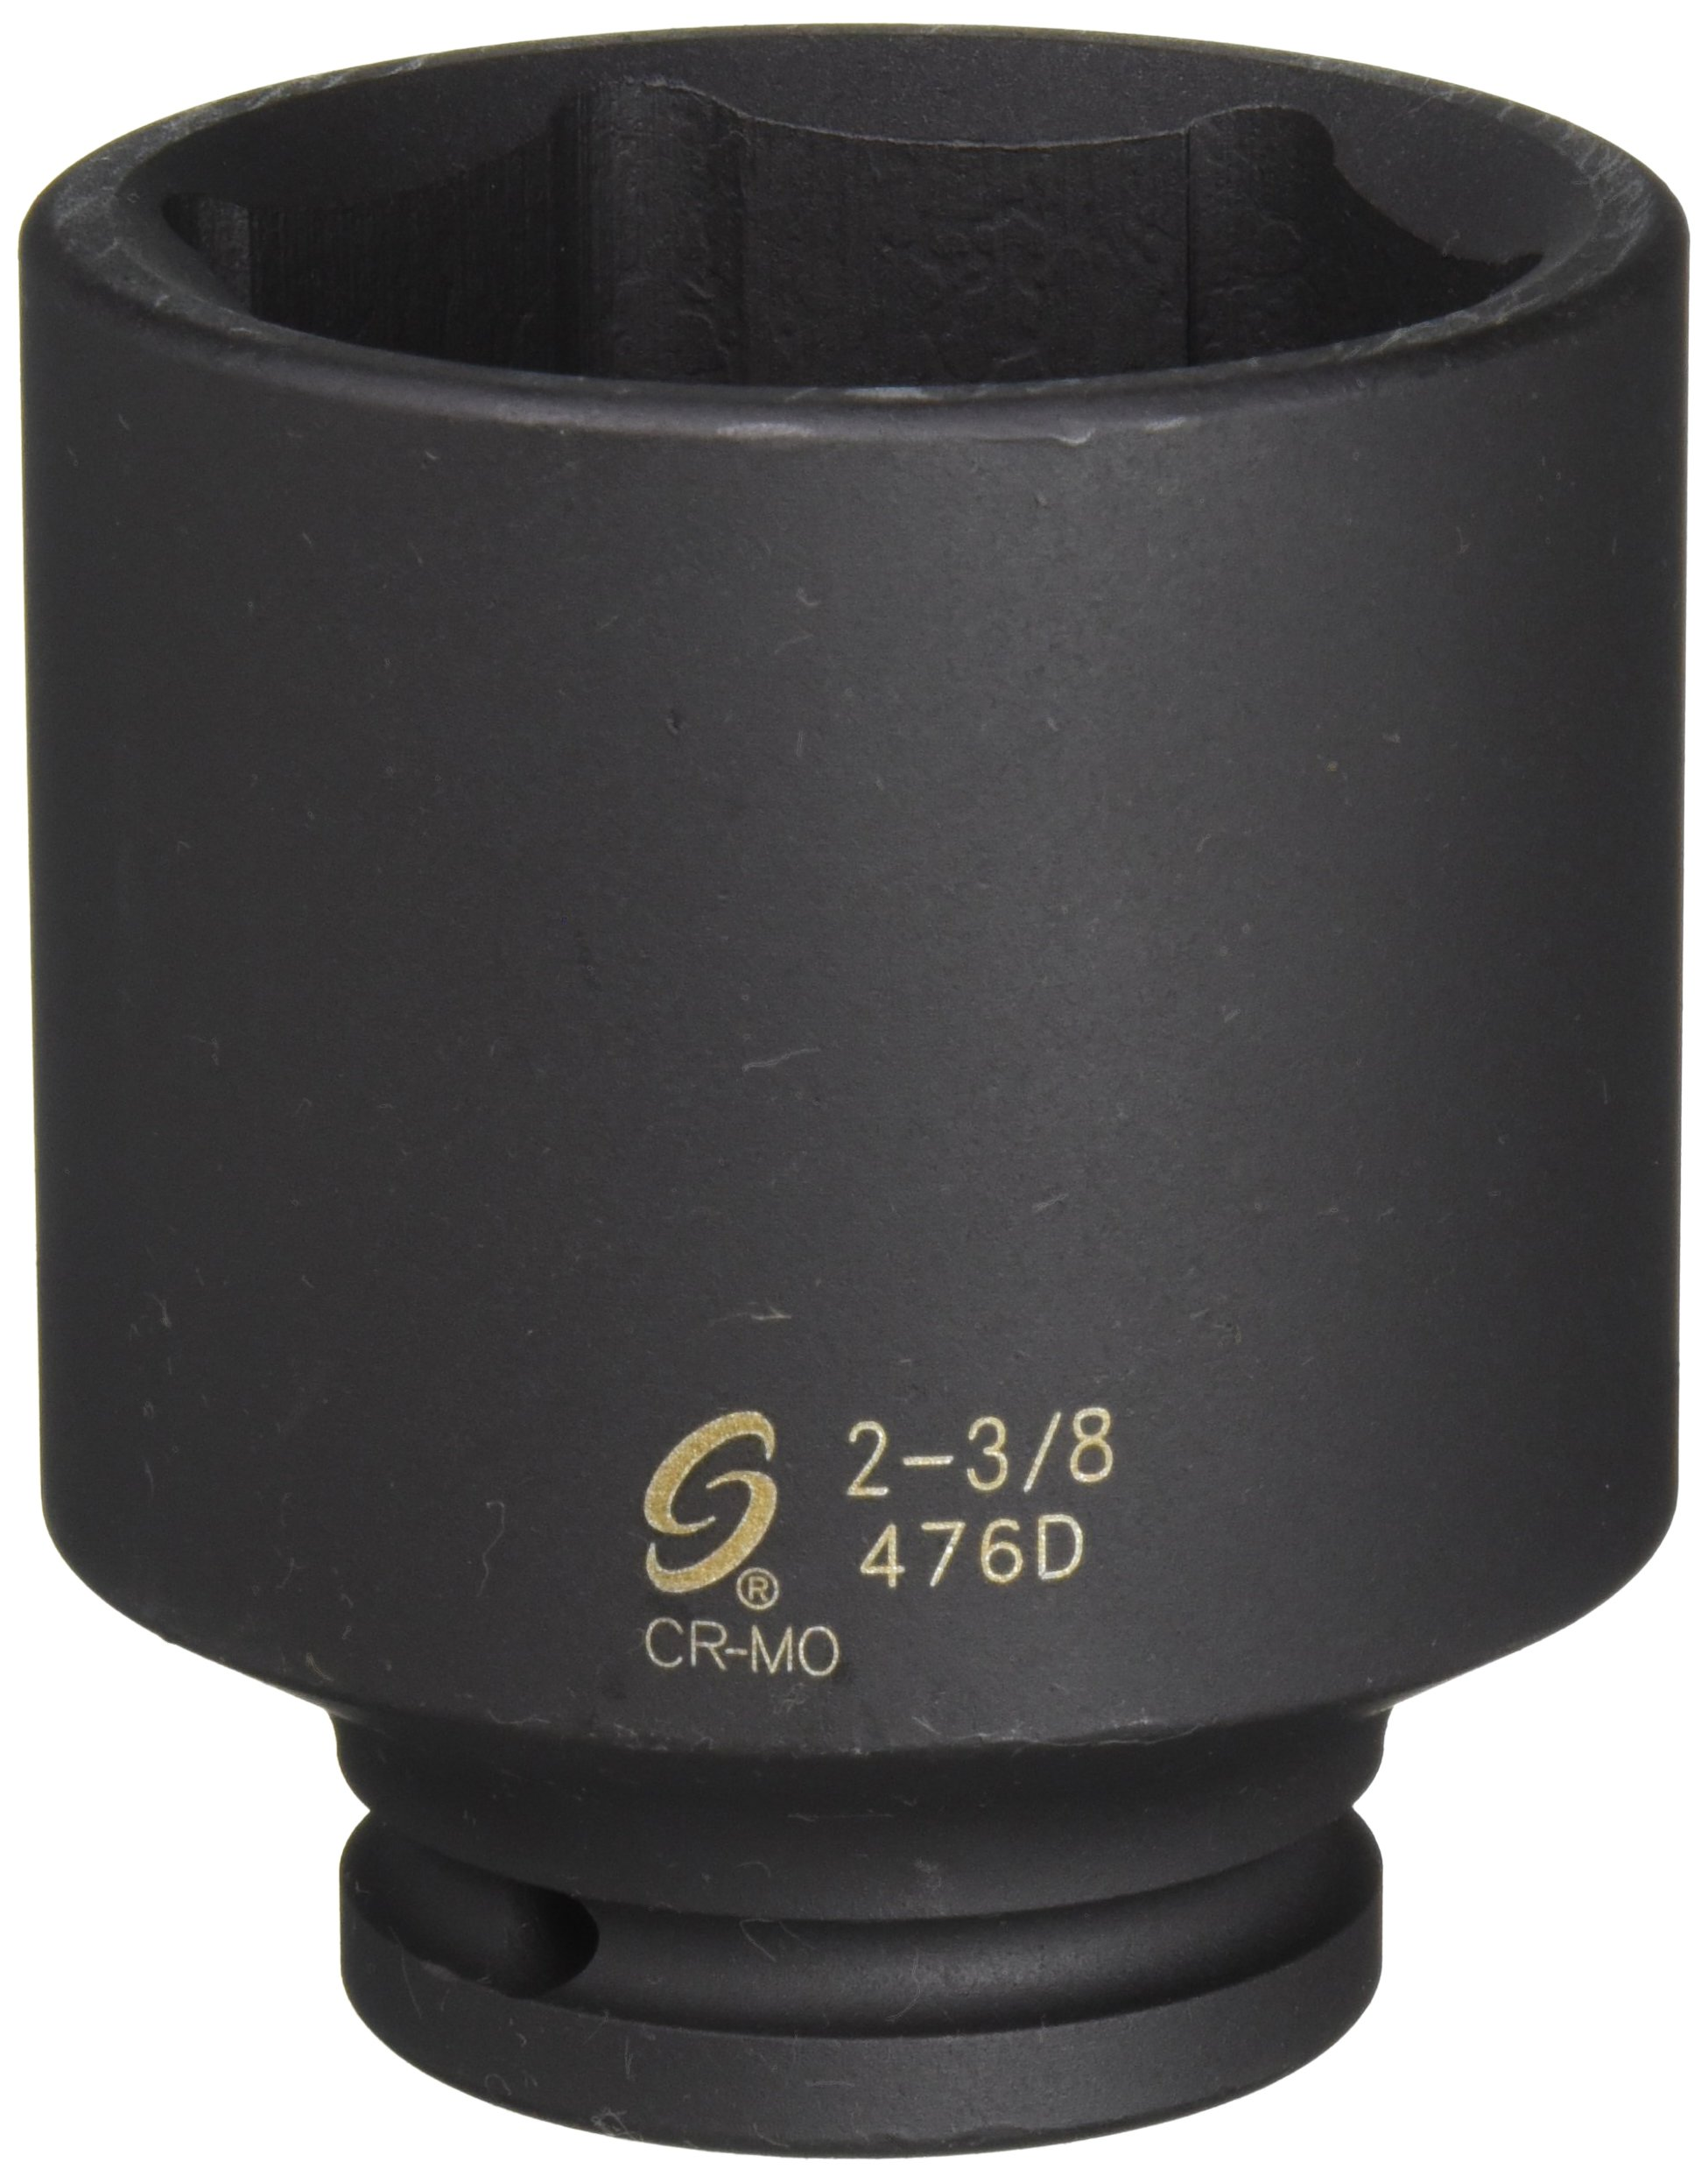 Sunex 476D 3/4'' Drive Deep 6 Point Impact Socket 2-3/8'' by Sunex Tools